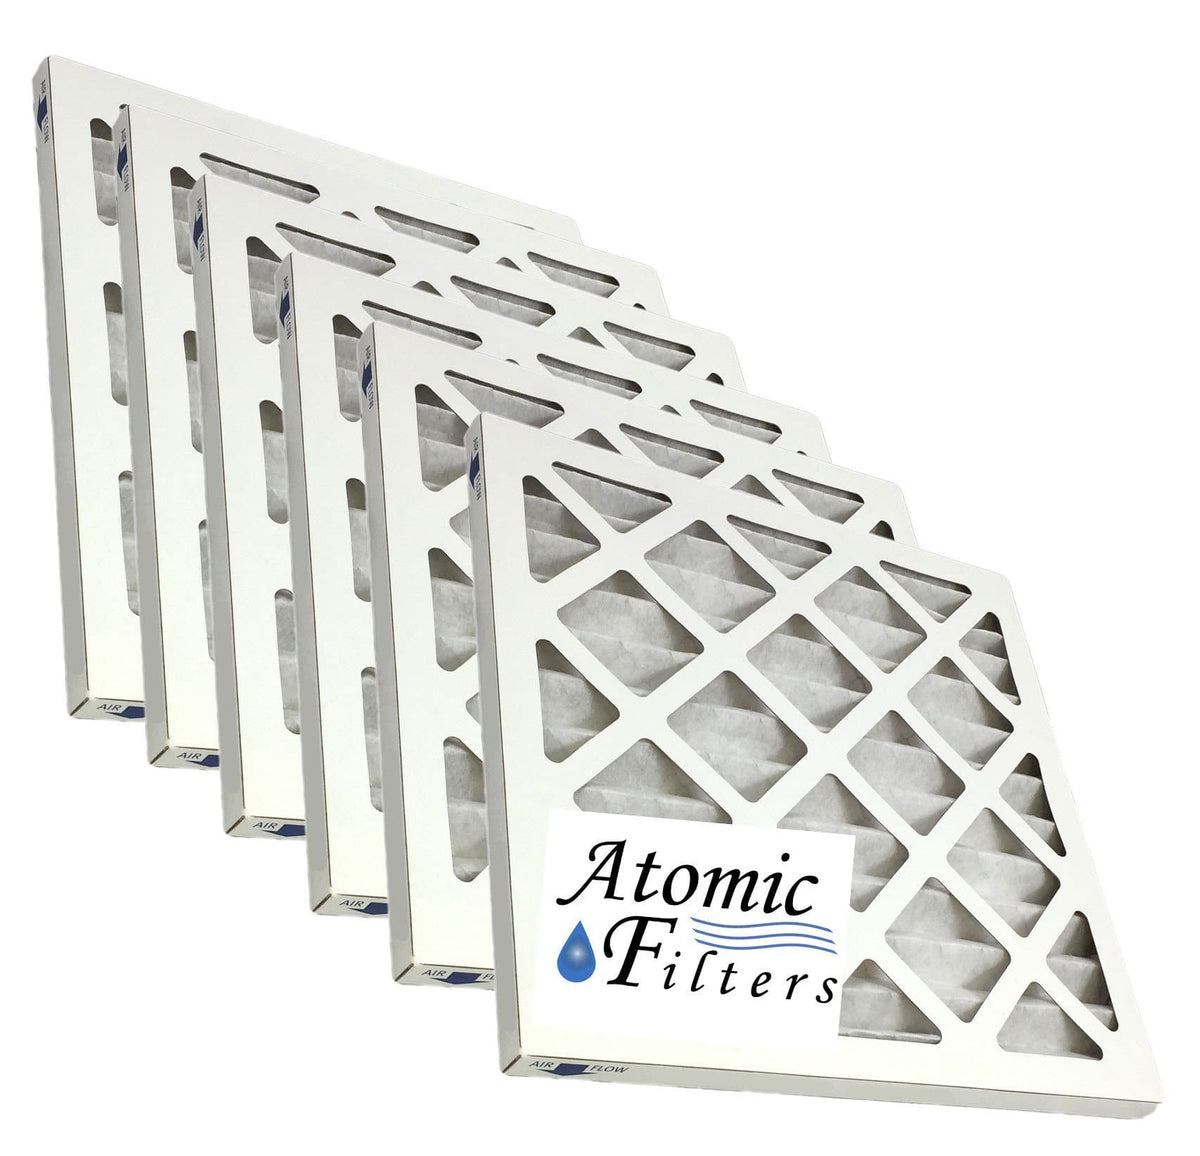 18x18x1 Merv 11 Pleated Geothermal Furnace Filter - Case of 6 by Atomic Filters